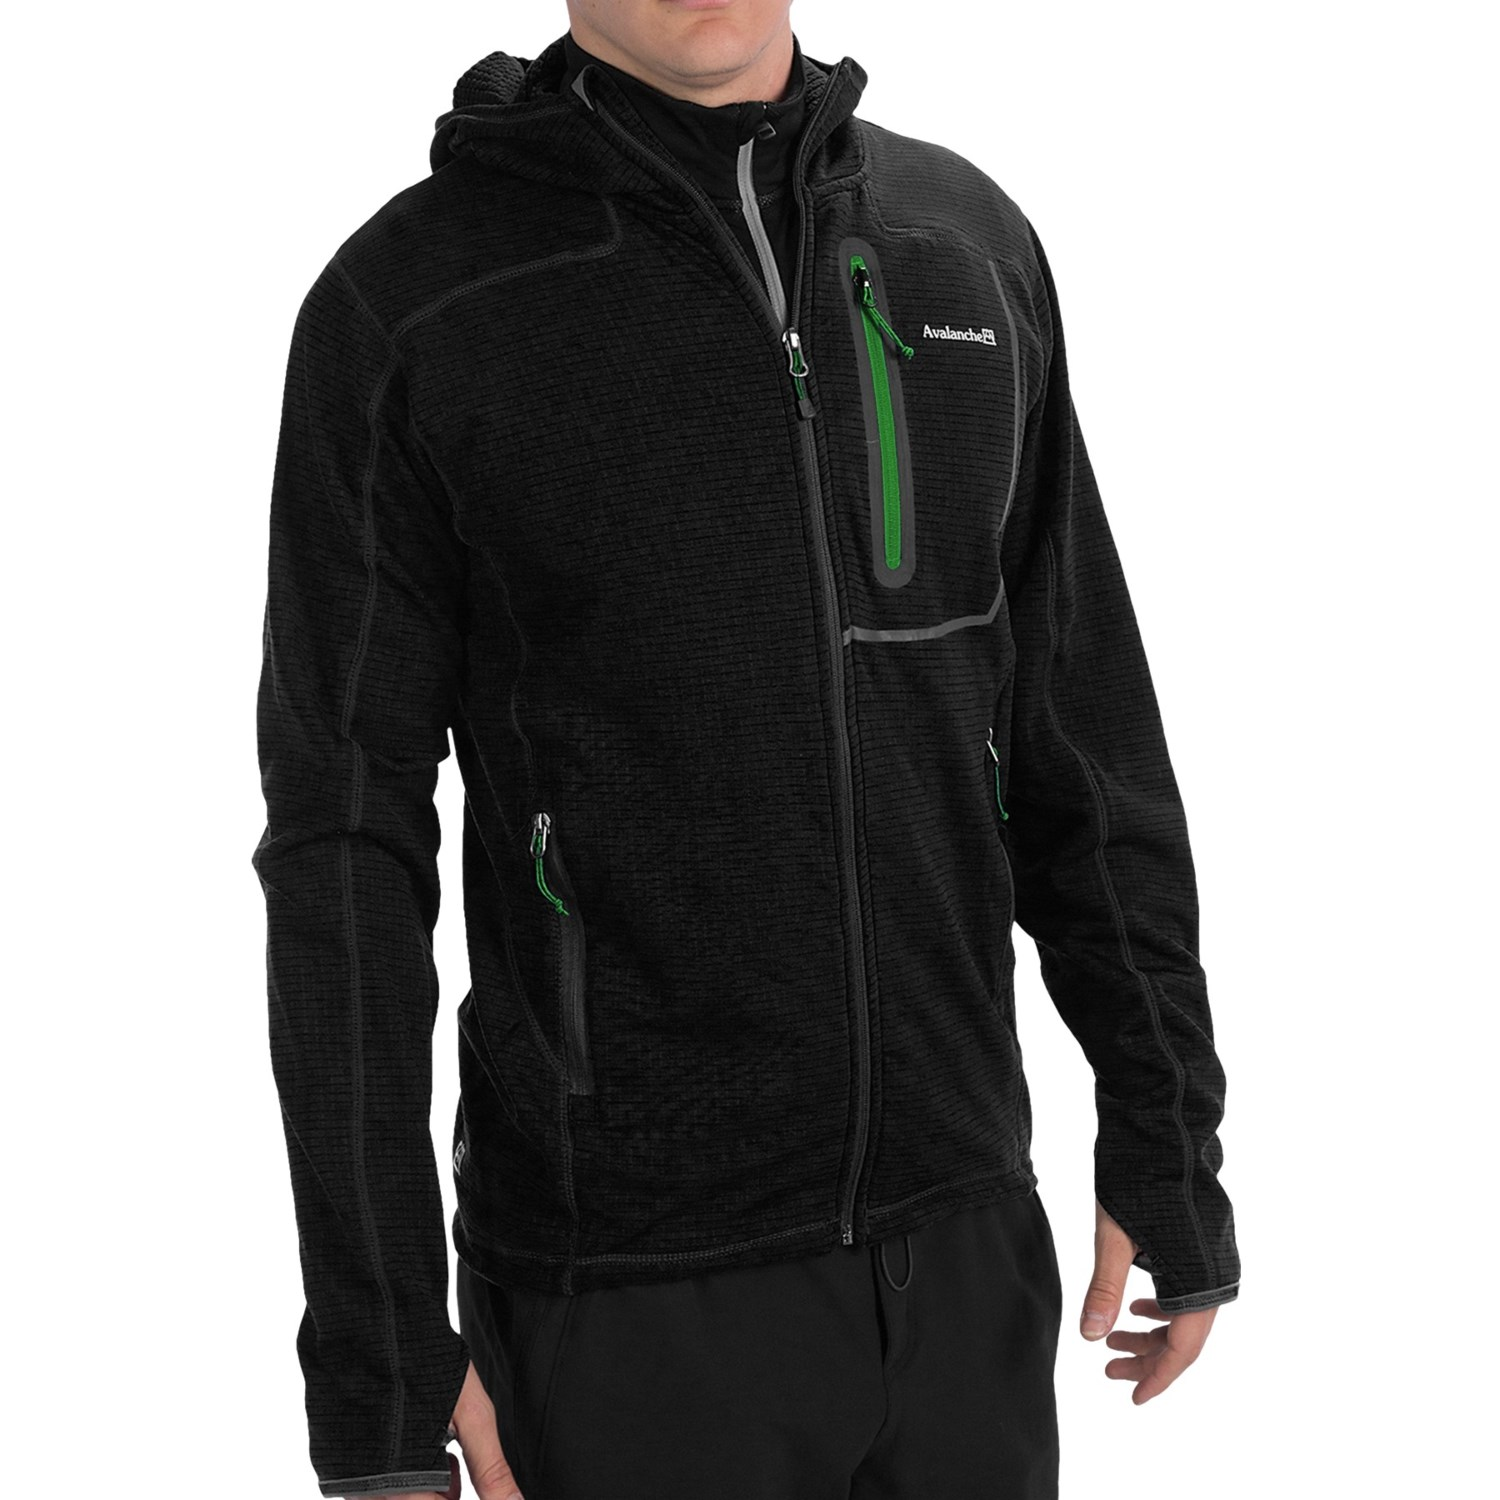 Avalanche Fleece Jacket | Outdoor Jacket